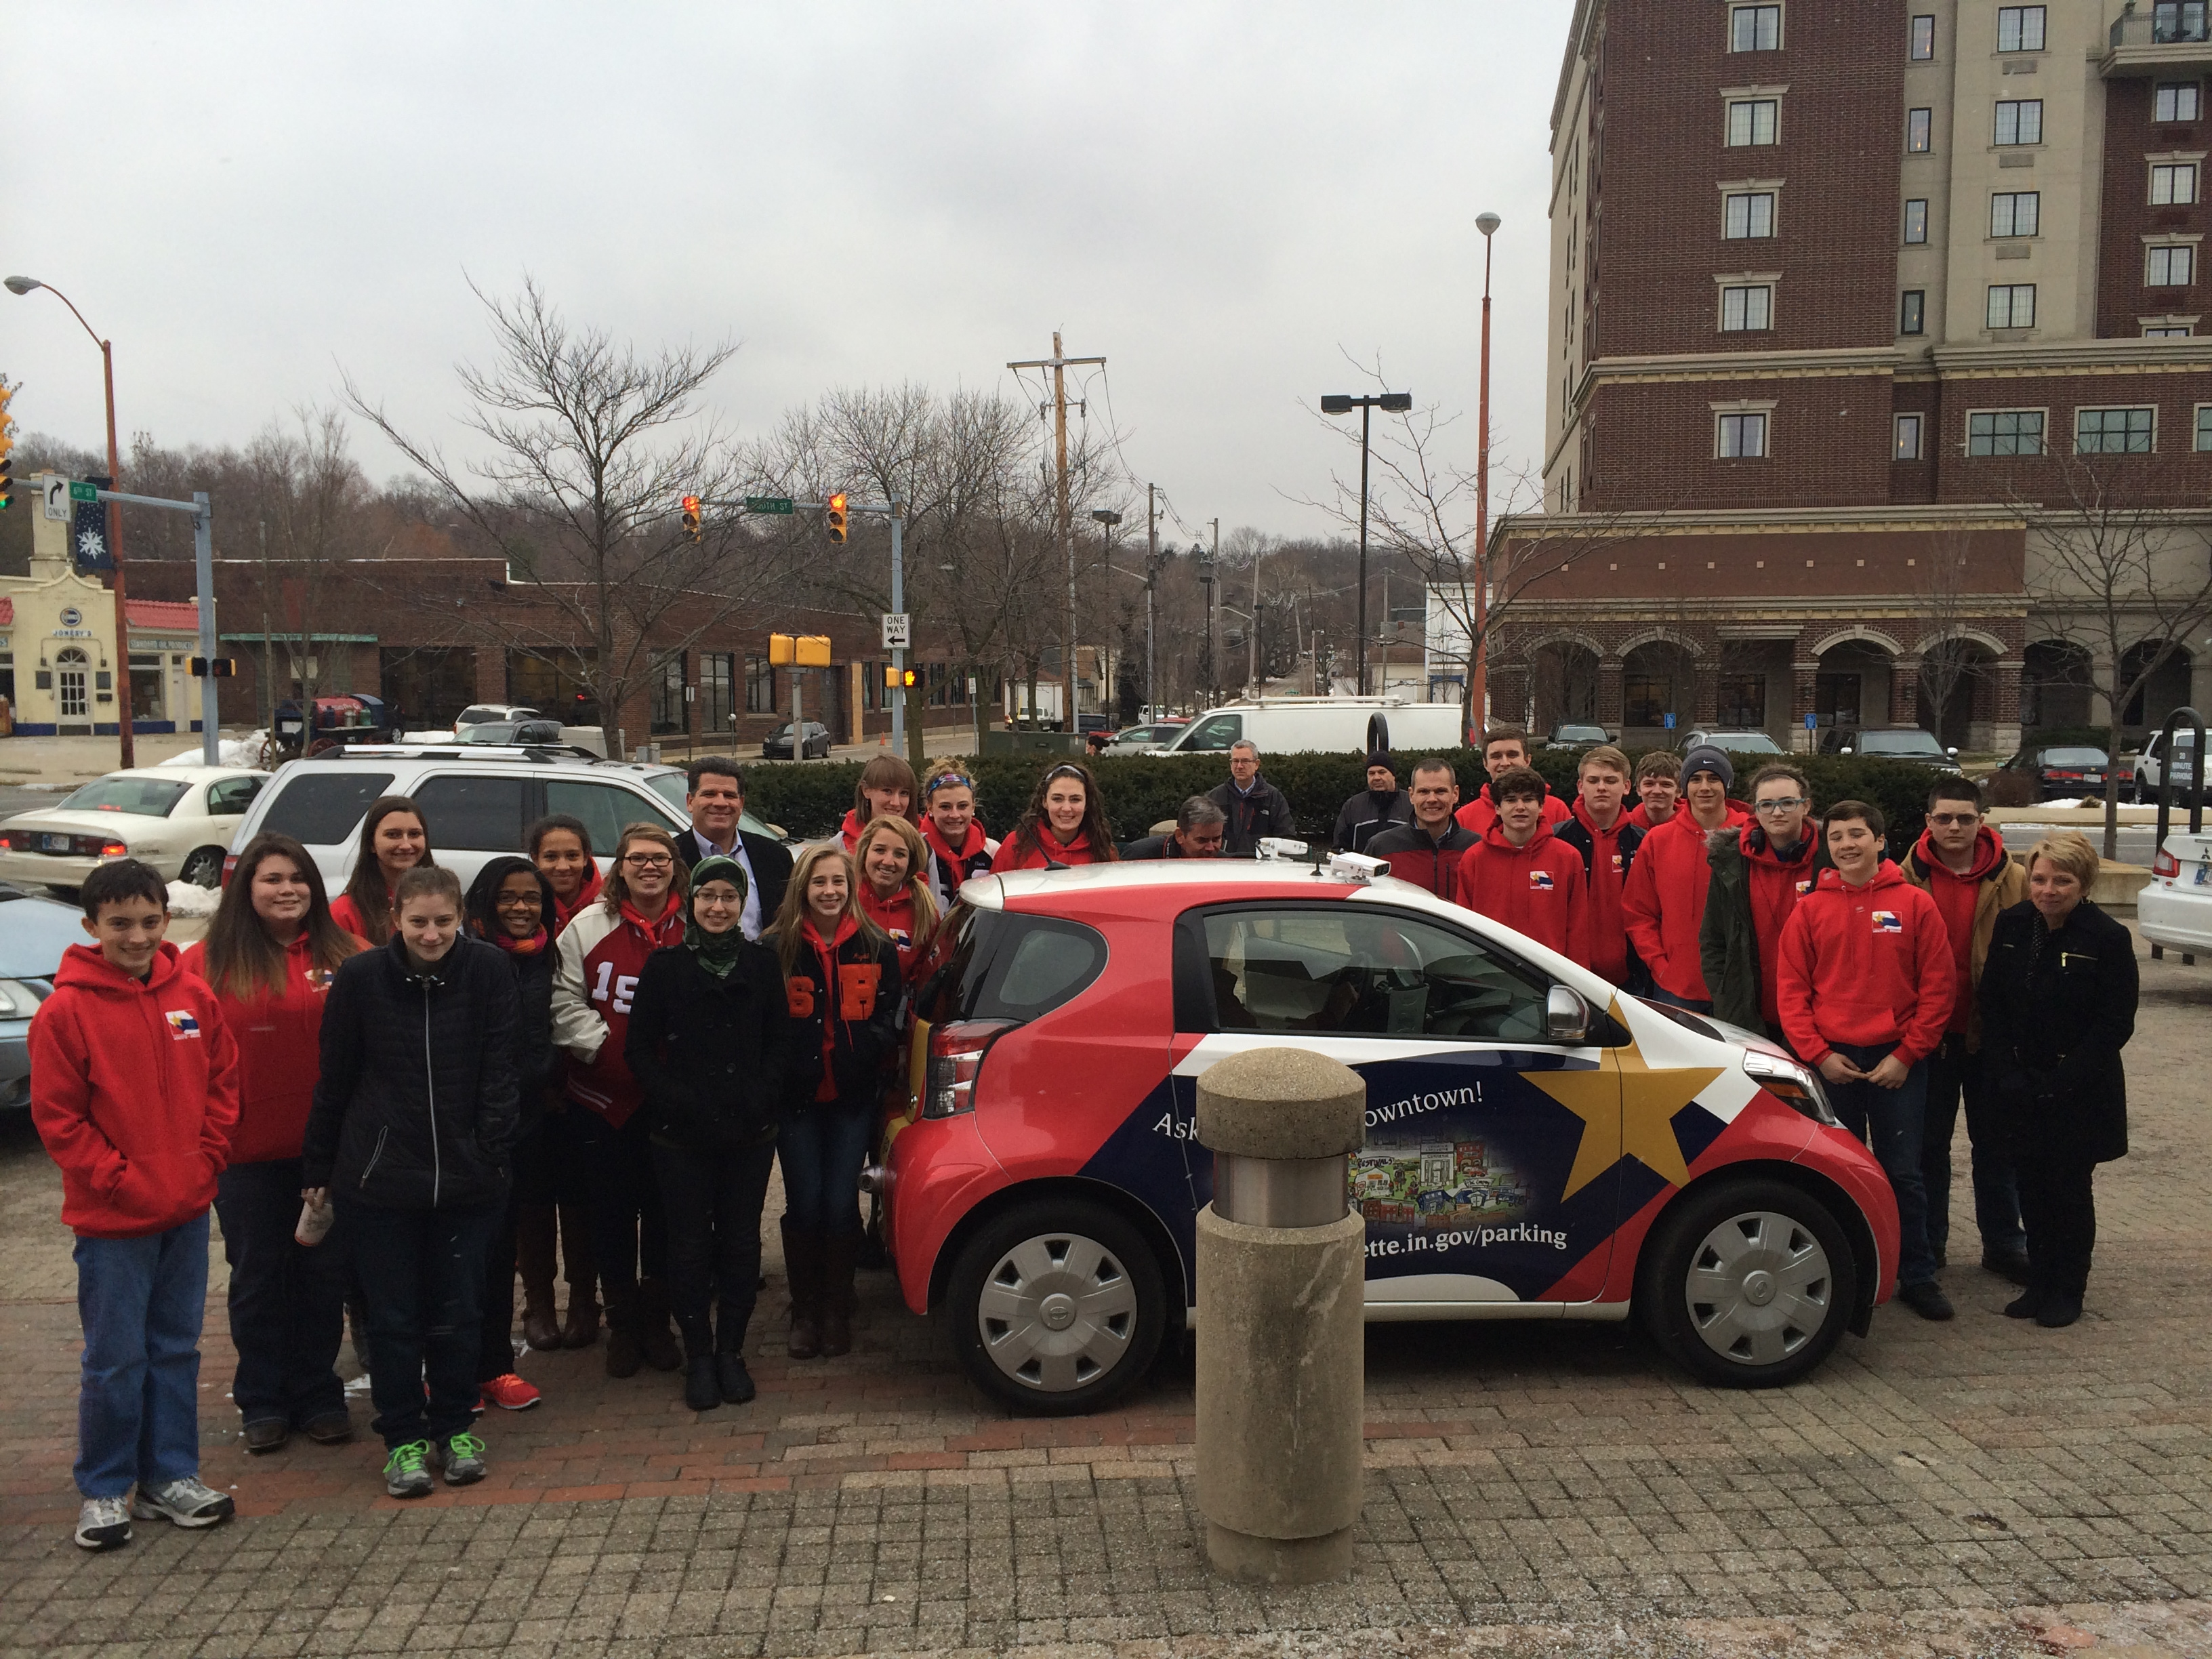 A group of teenagers standing next to a smart car